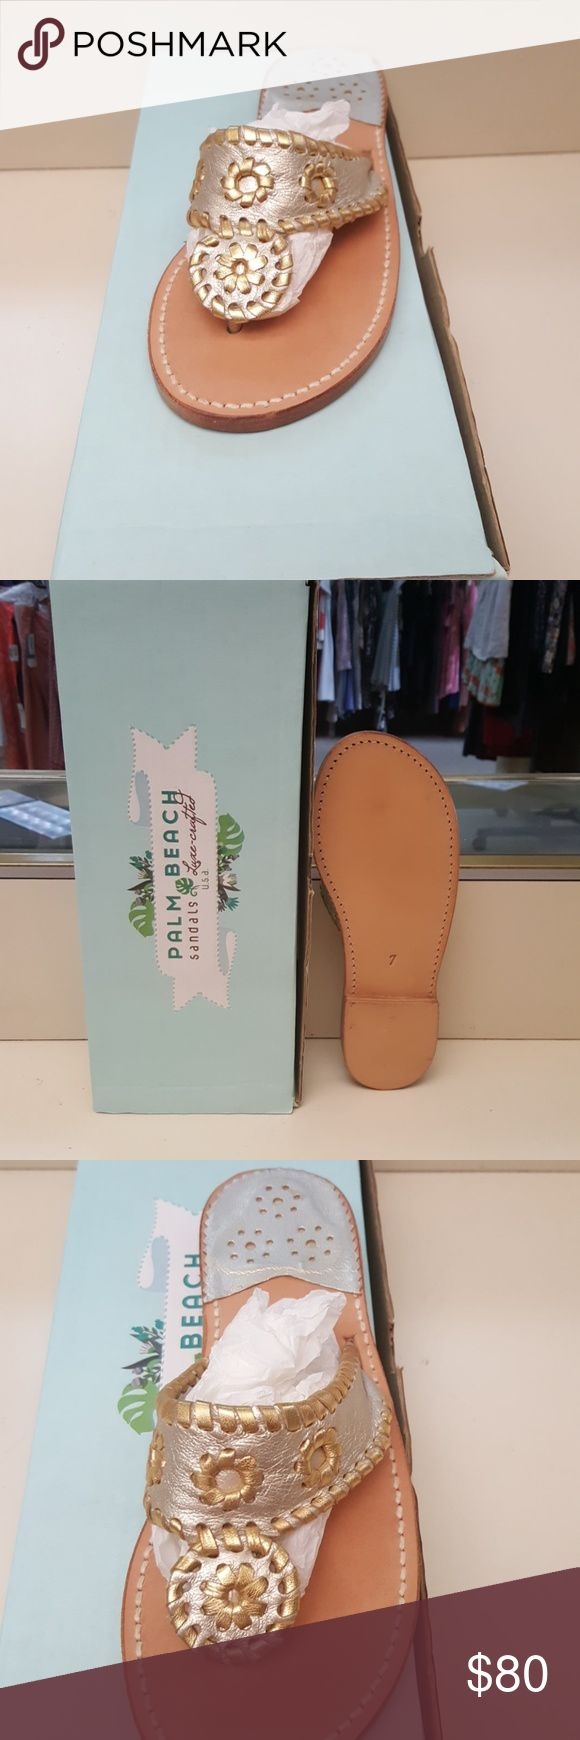 New Palm Beach Sandals New never owned, we are a retail store this is a overstock item, warranty on sandals from PB, GREAT DEAL!! Palm Beach Shoes Sandals